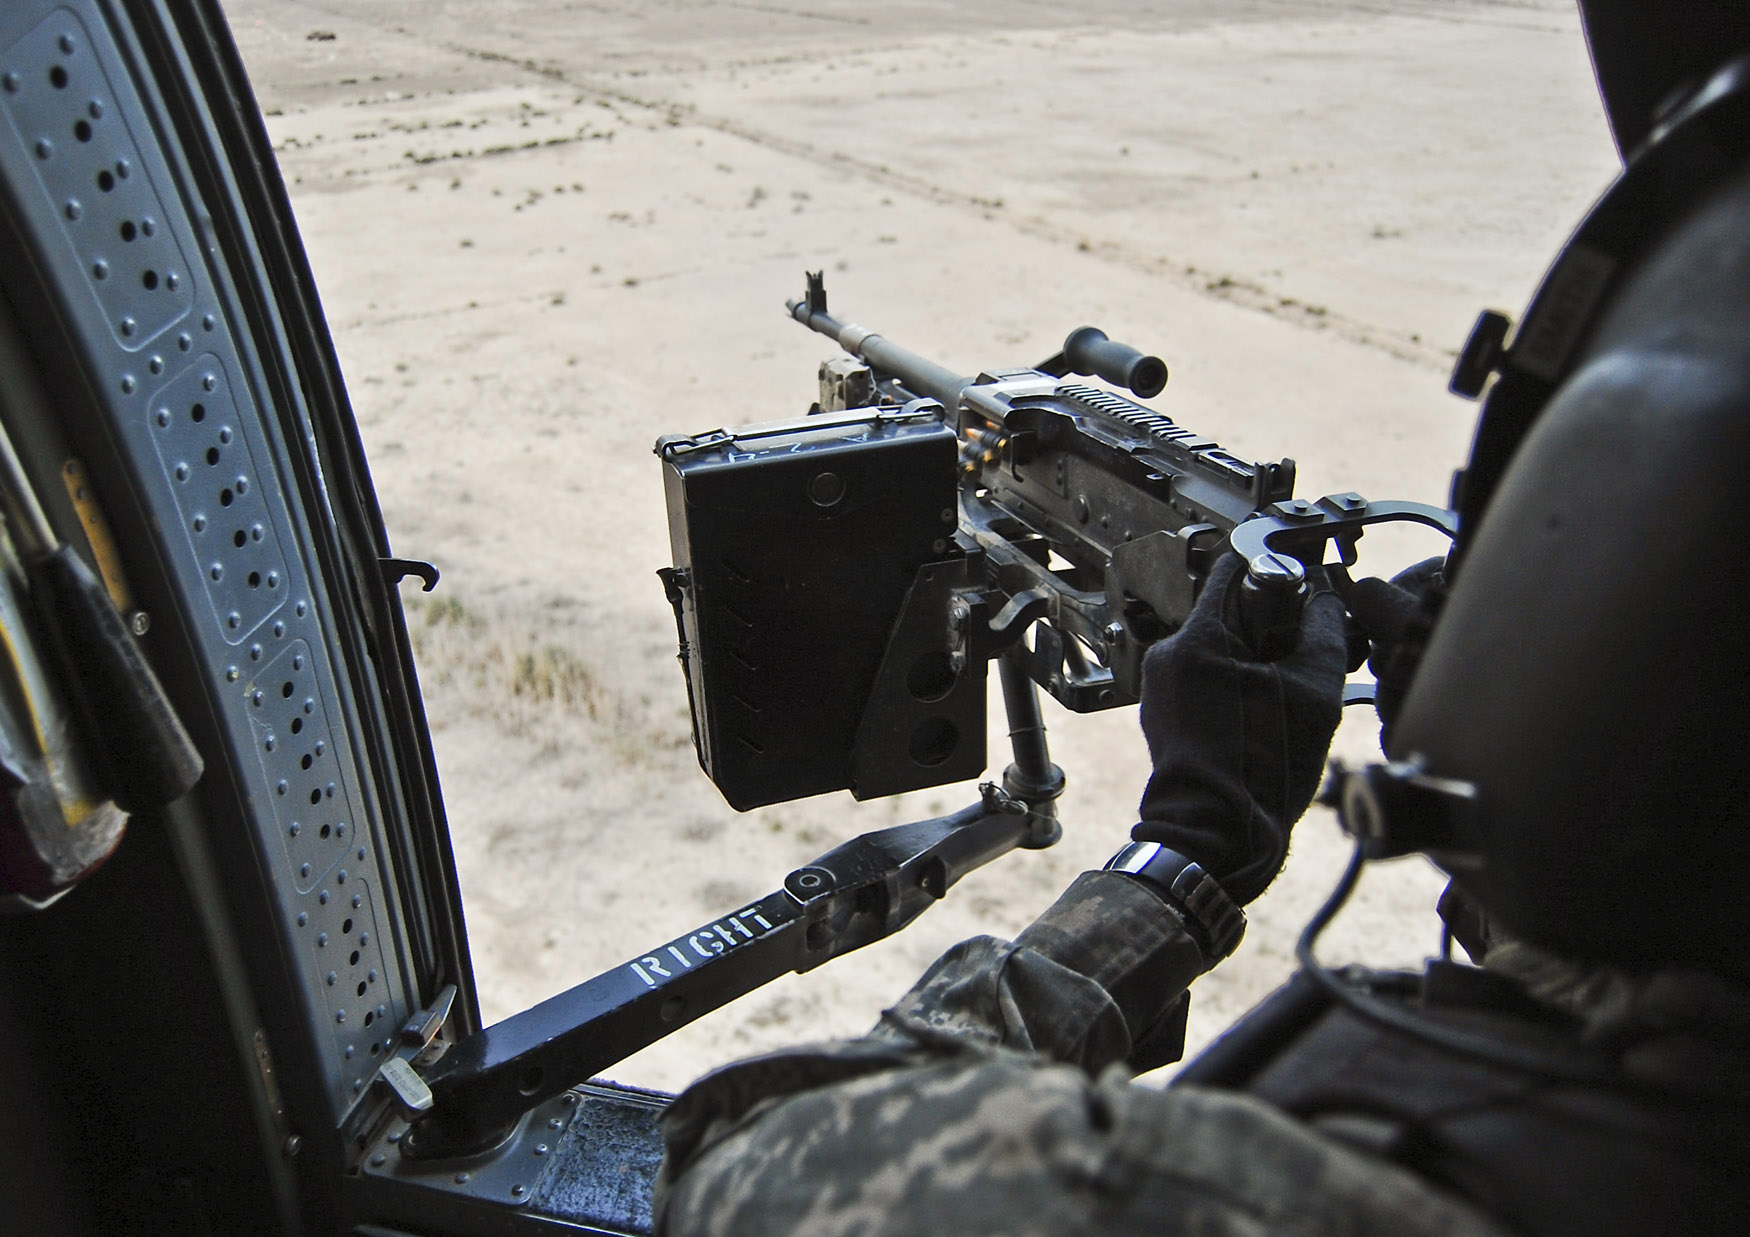 FileFlickr - The U.S. Army - door gunner qualification.jpg & File:Flickr - The U.S. Army - door gunner qualification.jpg ...